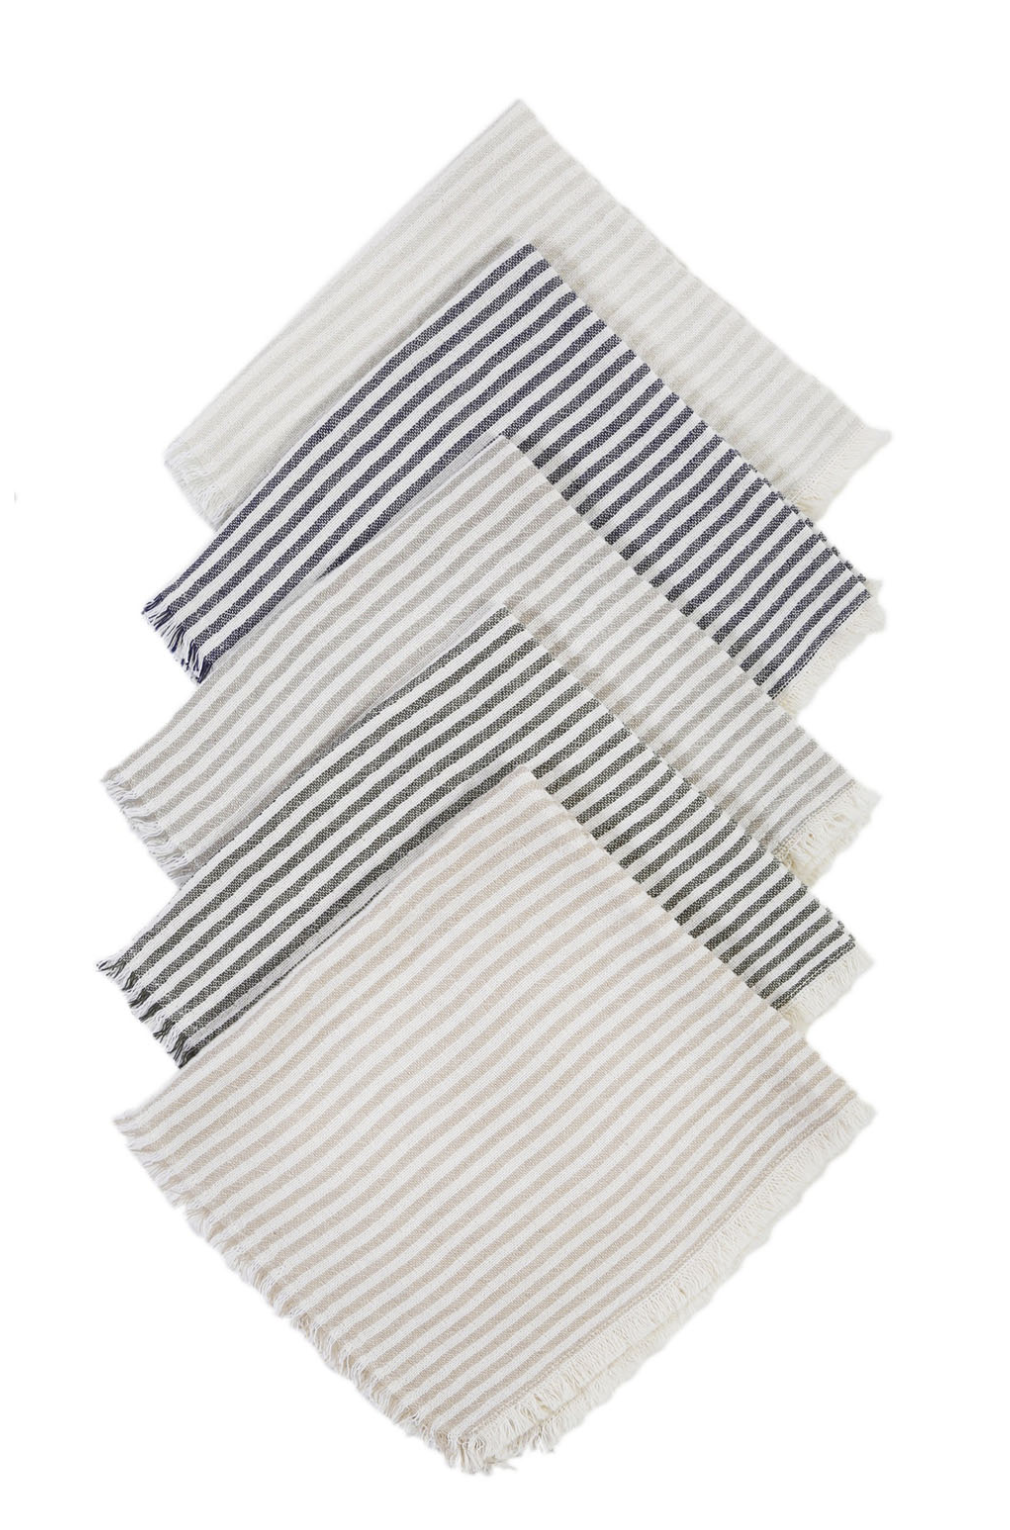 striped napkins in a a row various colors